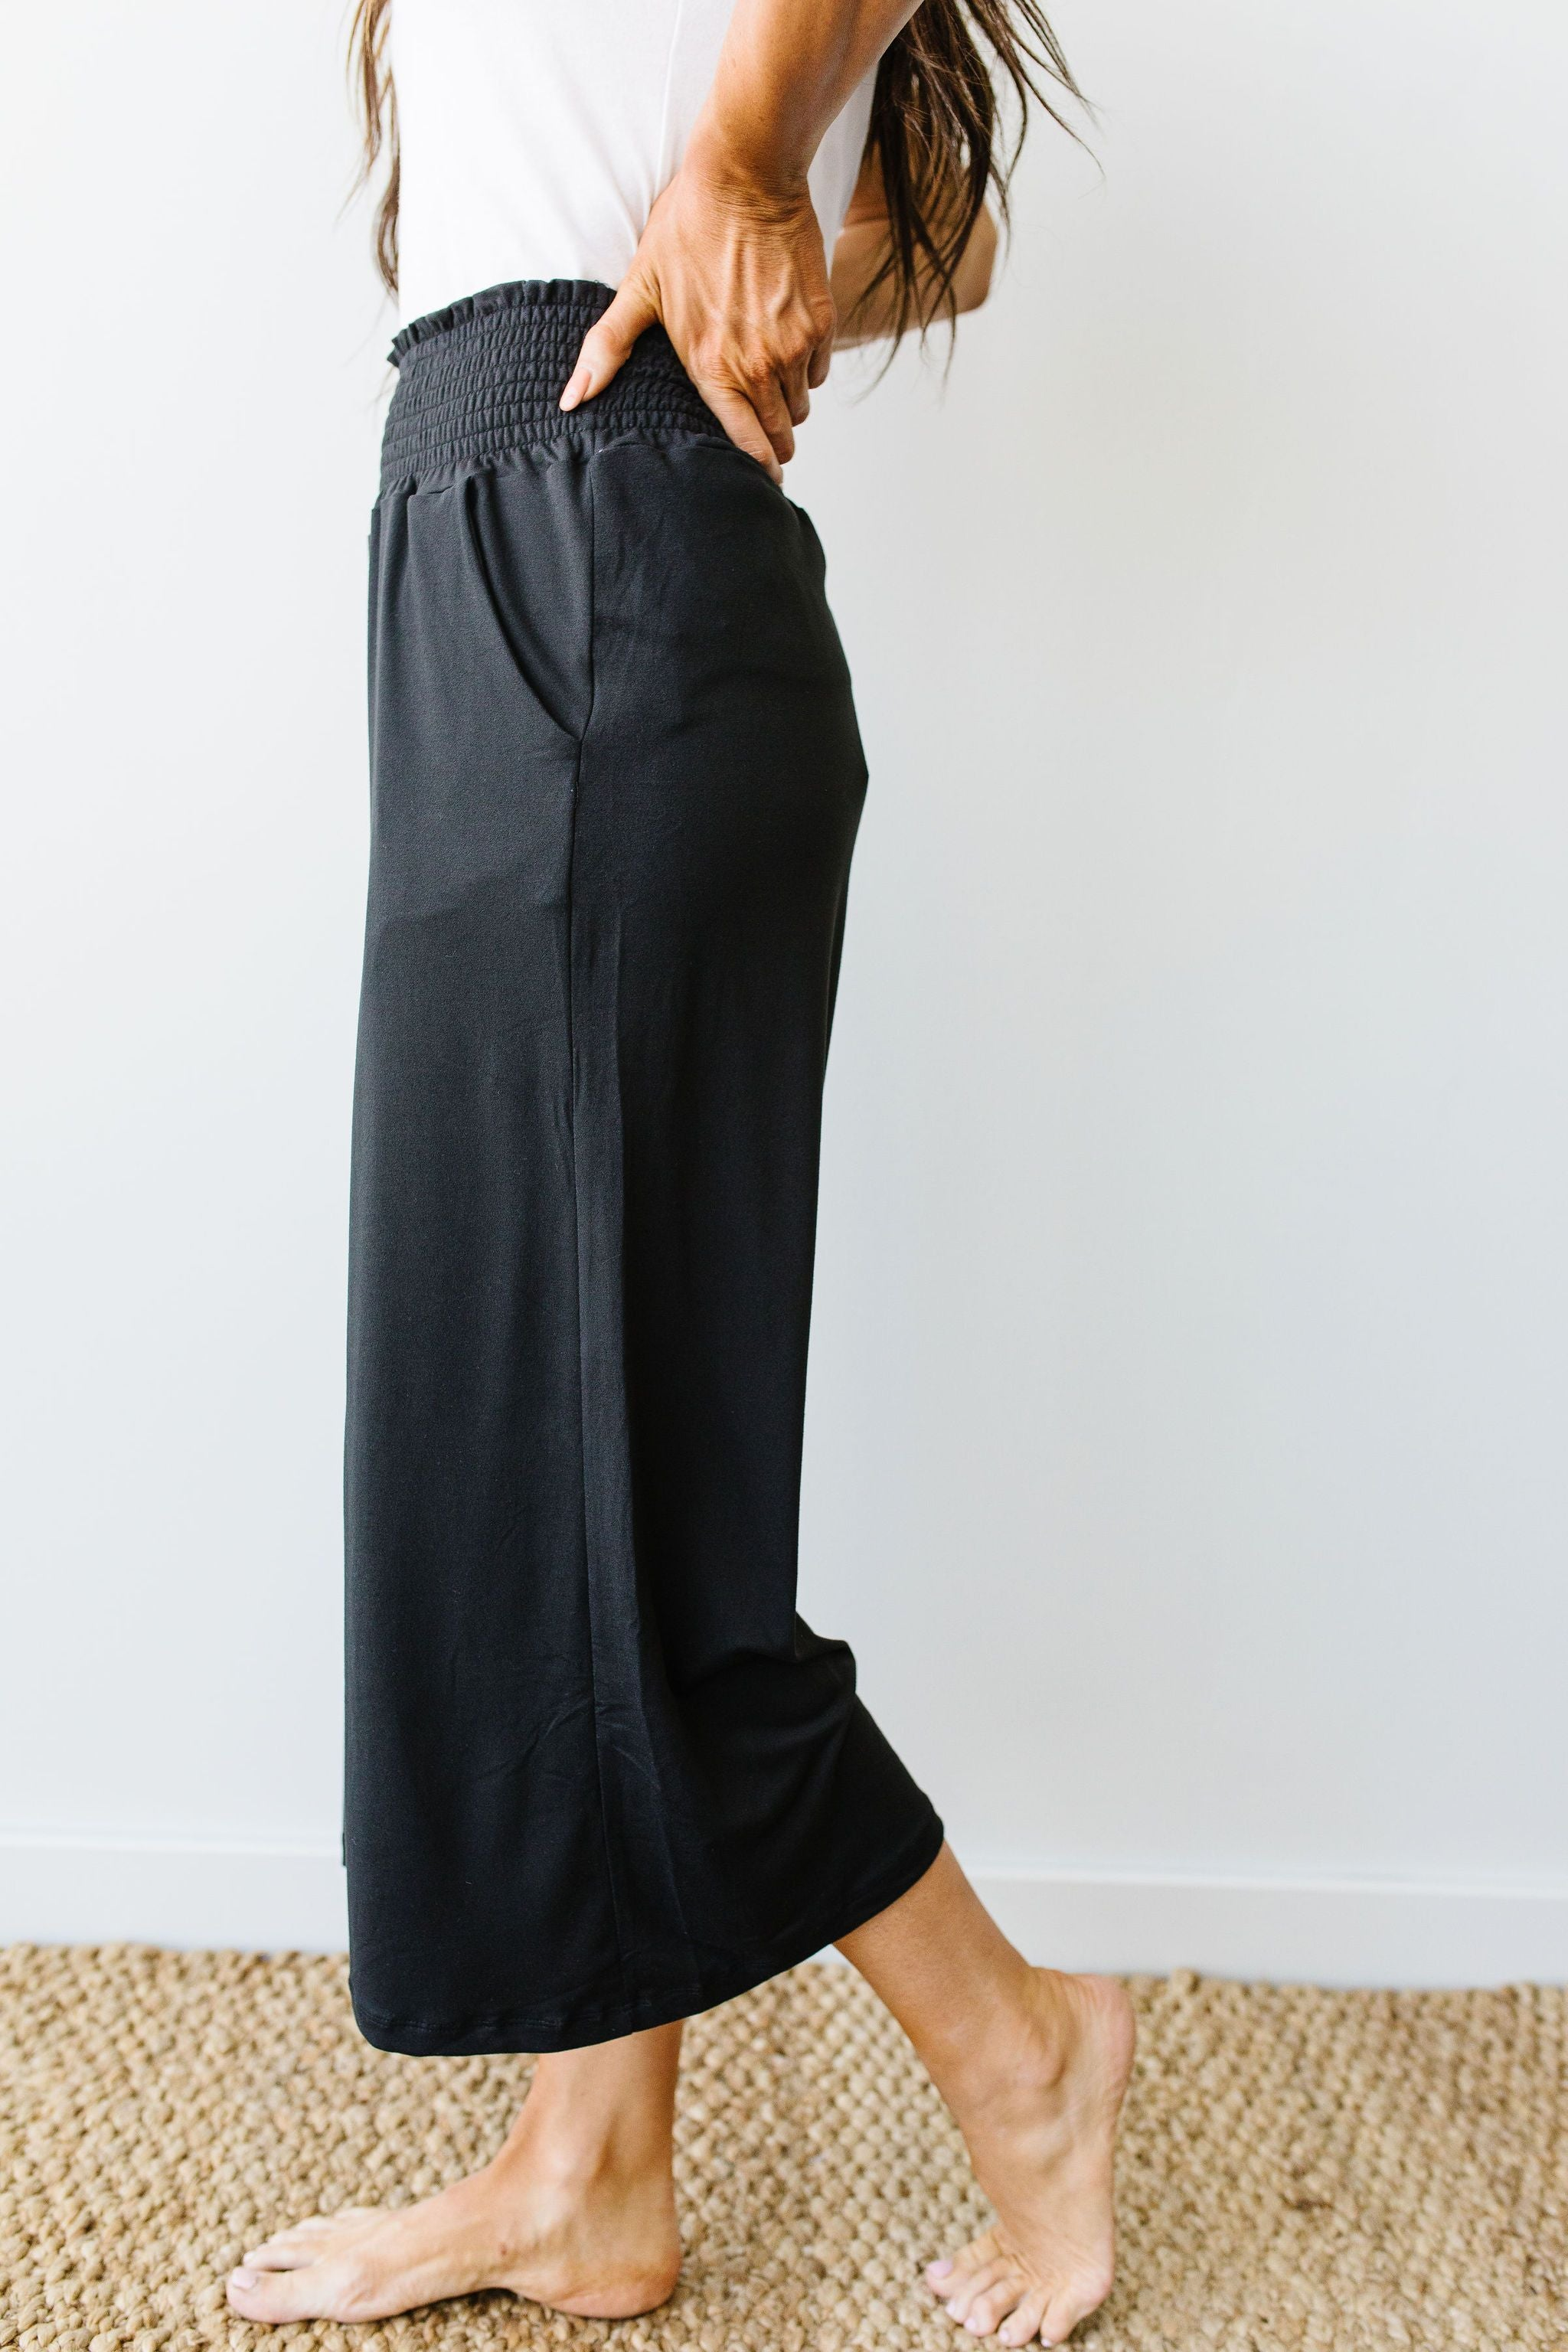 Go Get 'Em Gaucho Pants In Black - KaraMarie Boutique